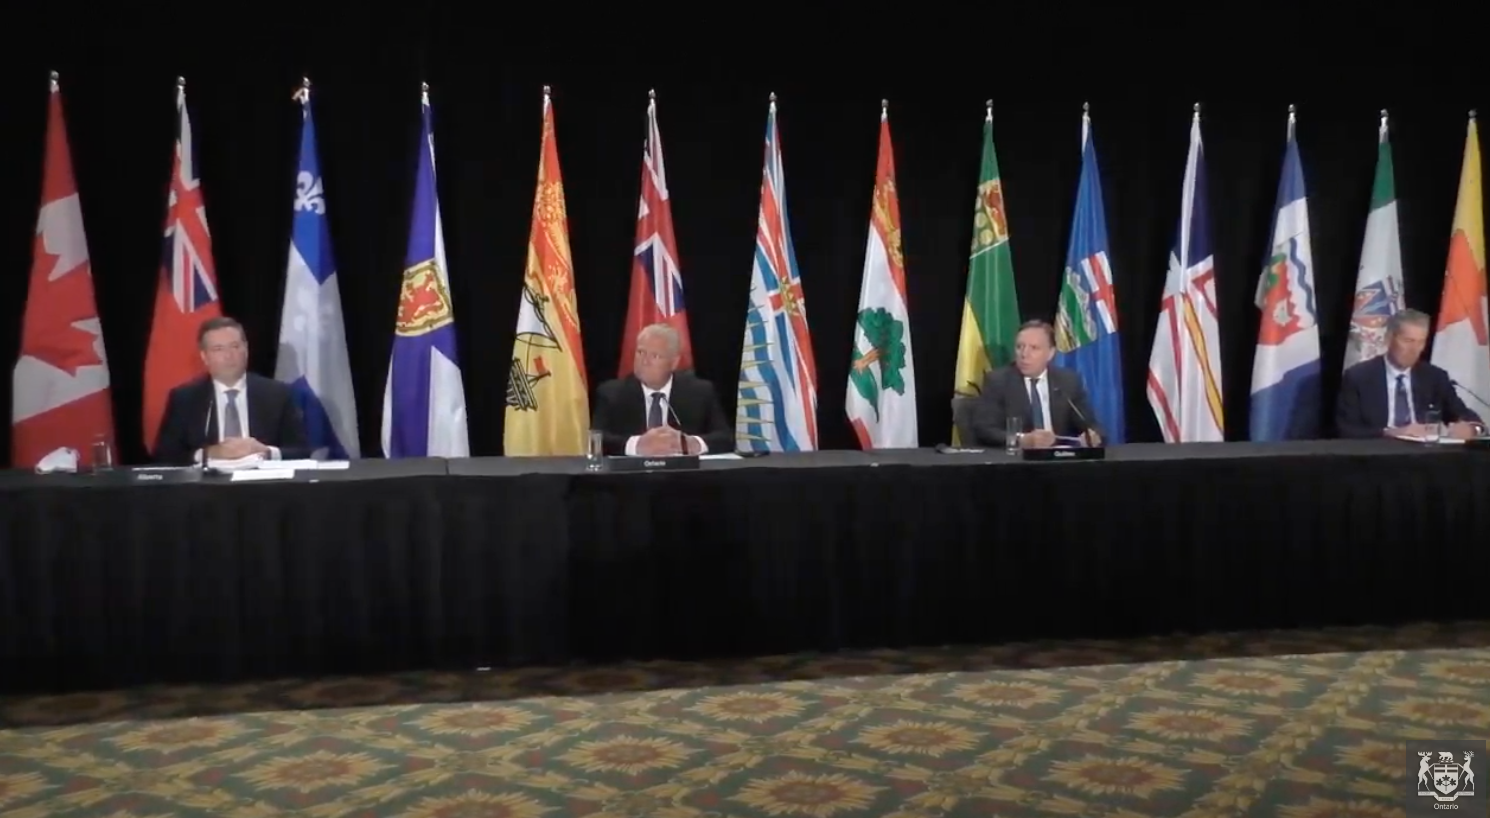 In Brief: Premiers band together to ask for more health-care funding